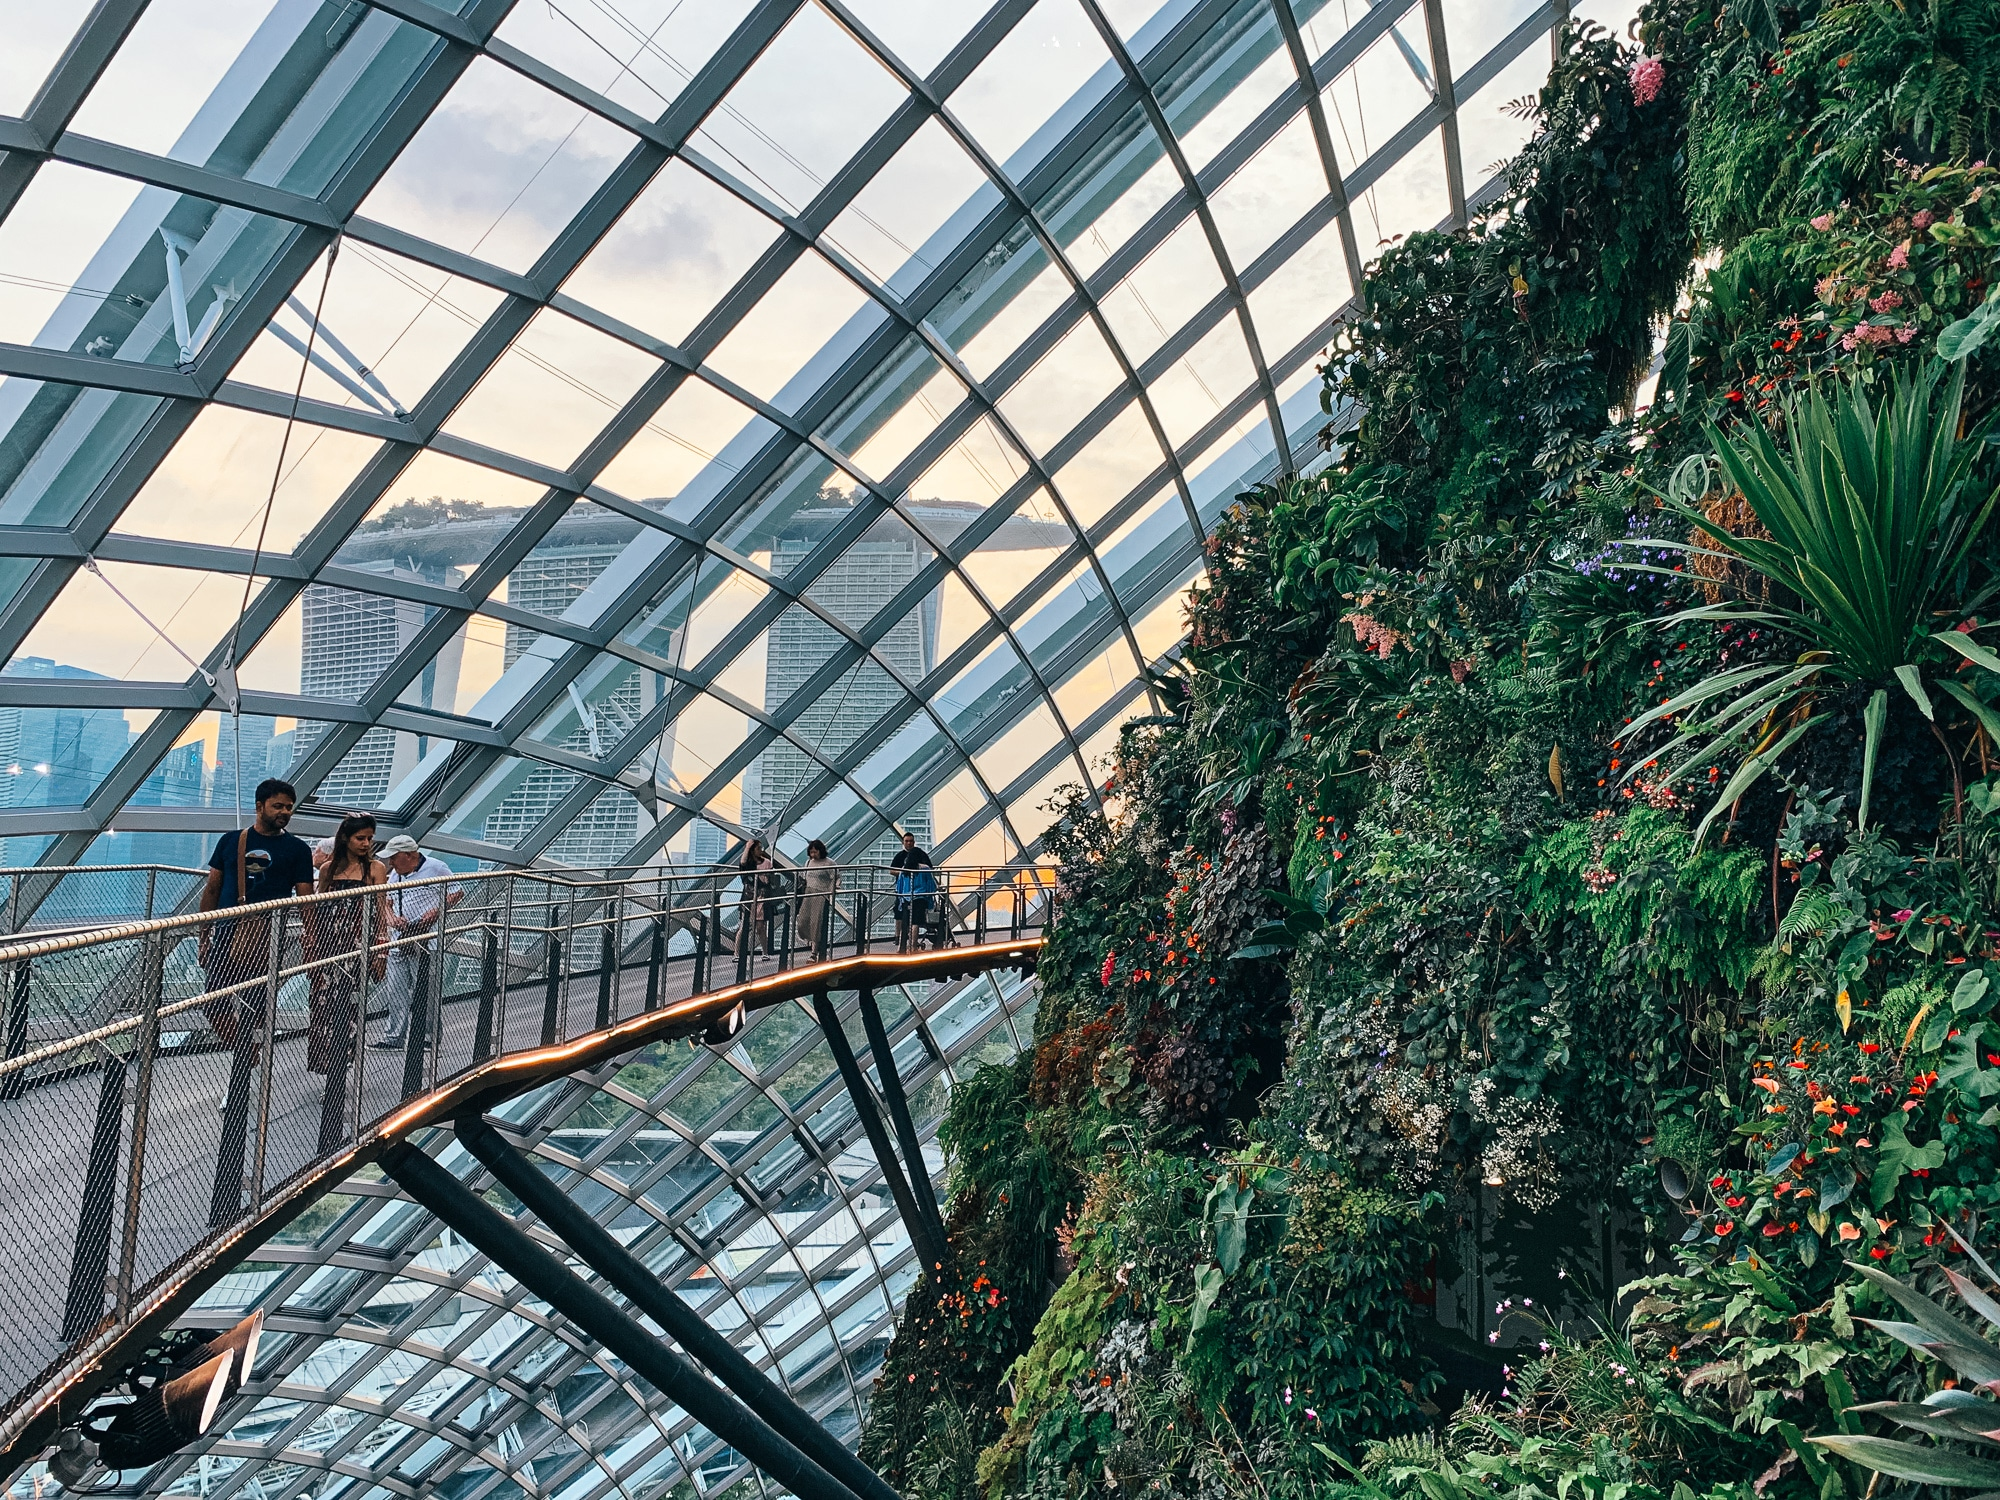 Gardens by the Bay: Sehenswürdigkeiten, Highlights und Eintrittspreise - Cloud Forest Skywalk